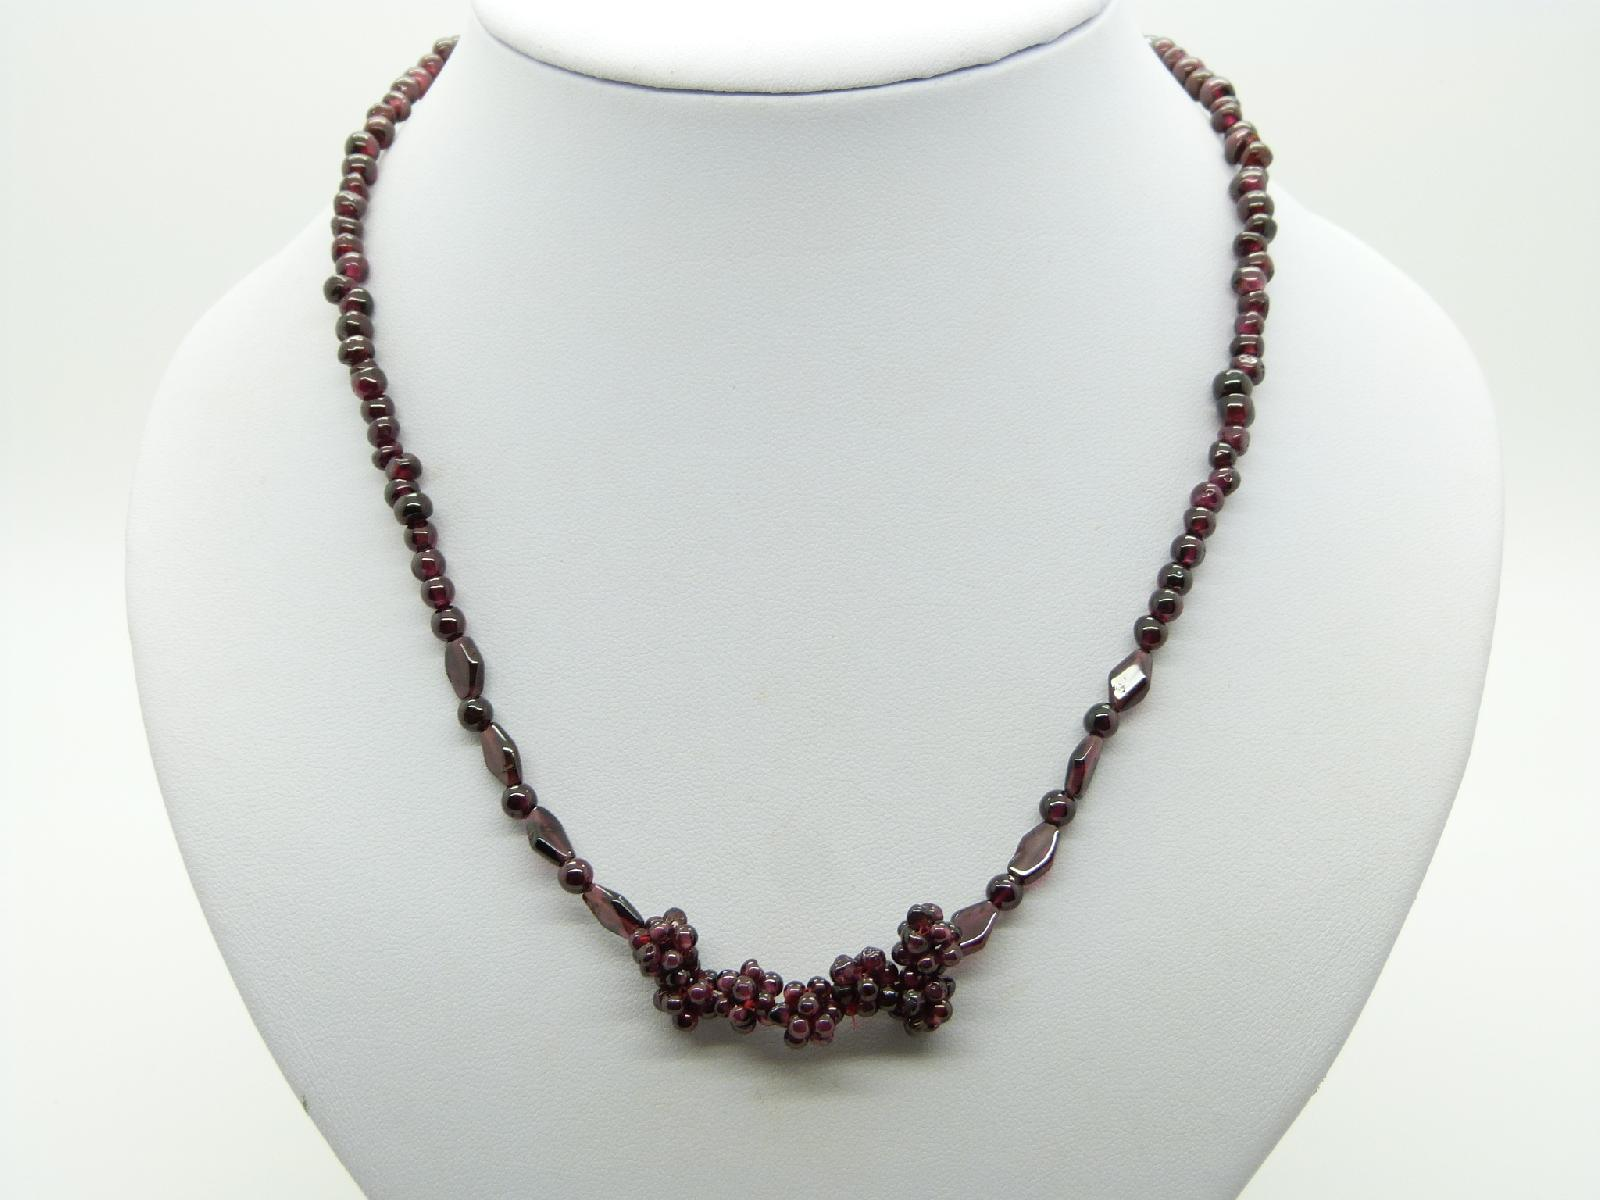 £8.00 - Delicate and Pretty Garnet Glass Cluster Bead Necklace 47cms